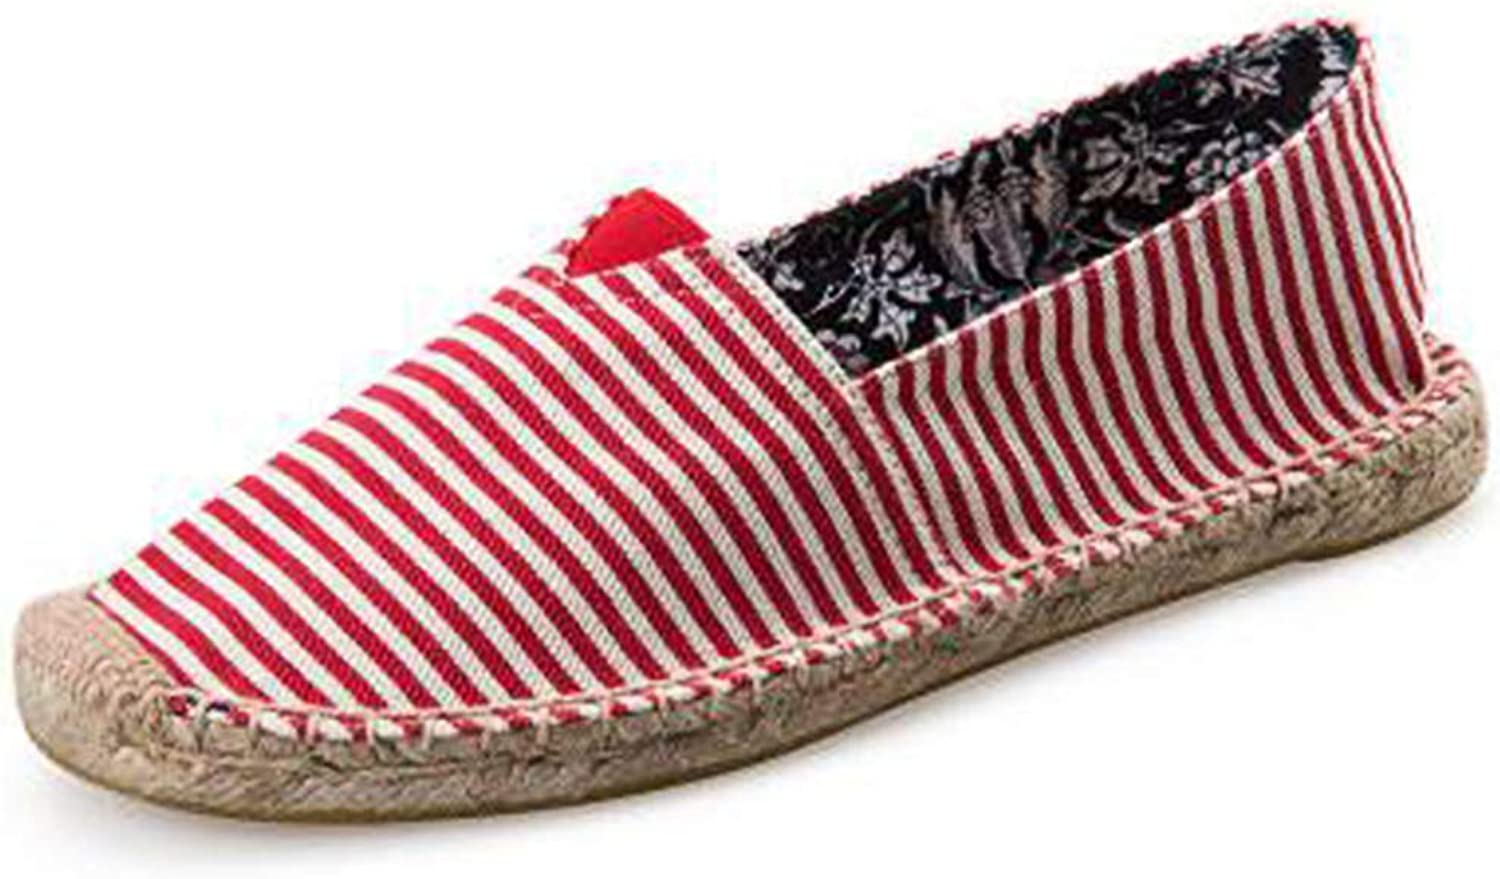 York Zhu Women Flats,Retro Bohemian Striped Espadrilles Breathable Casual Loafers